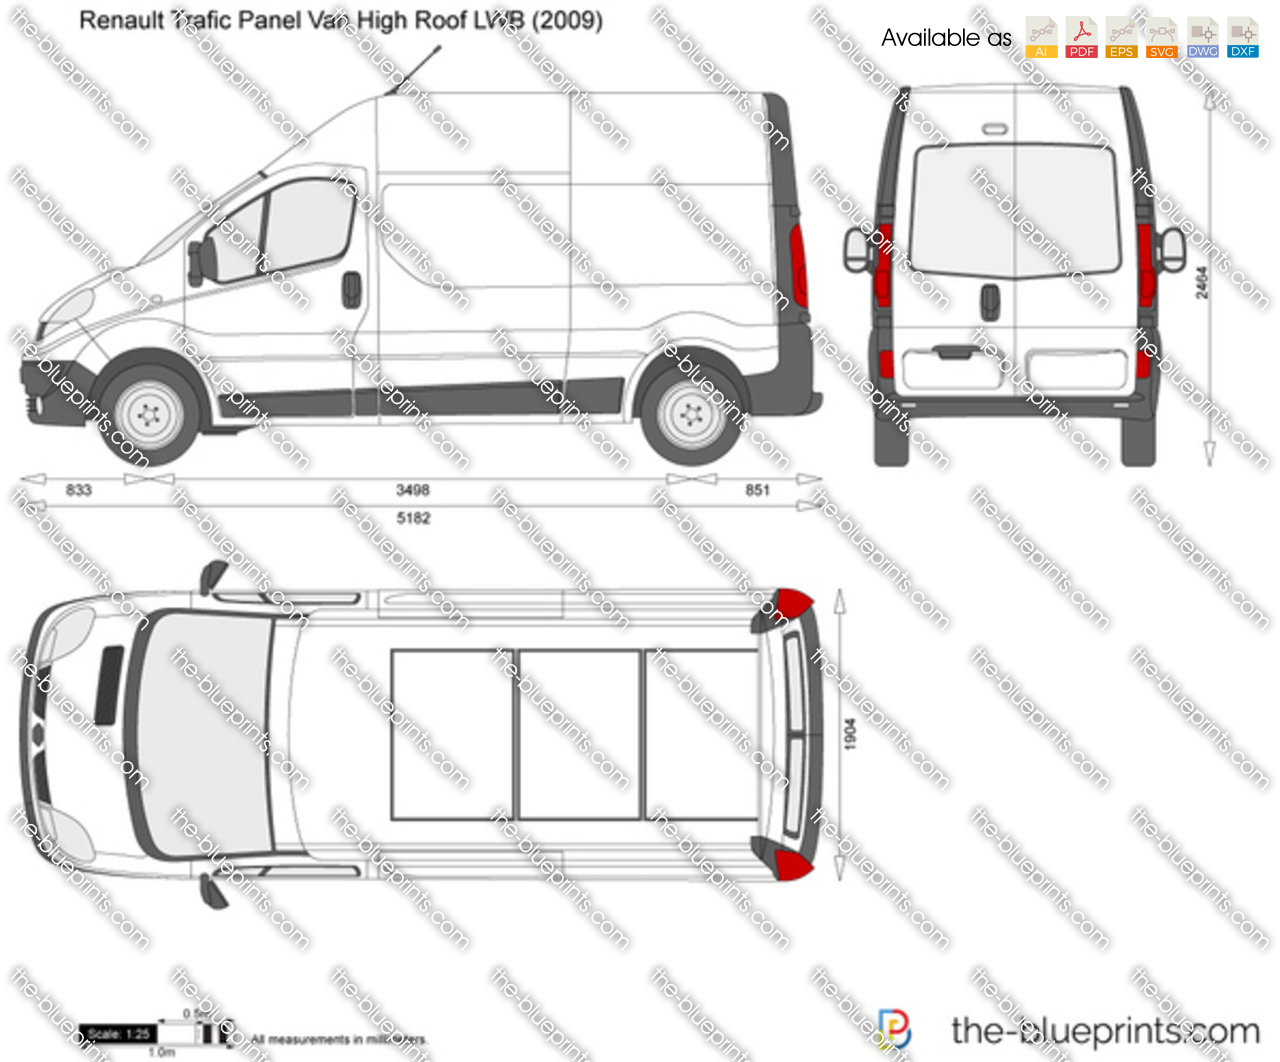 renault trafic panel van high roof lwb vector drawing. Black Bedroom Furniture Sets. Home Design Ideas